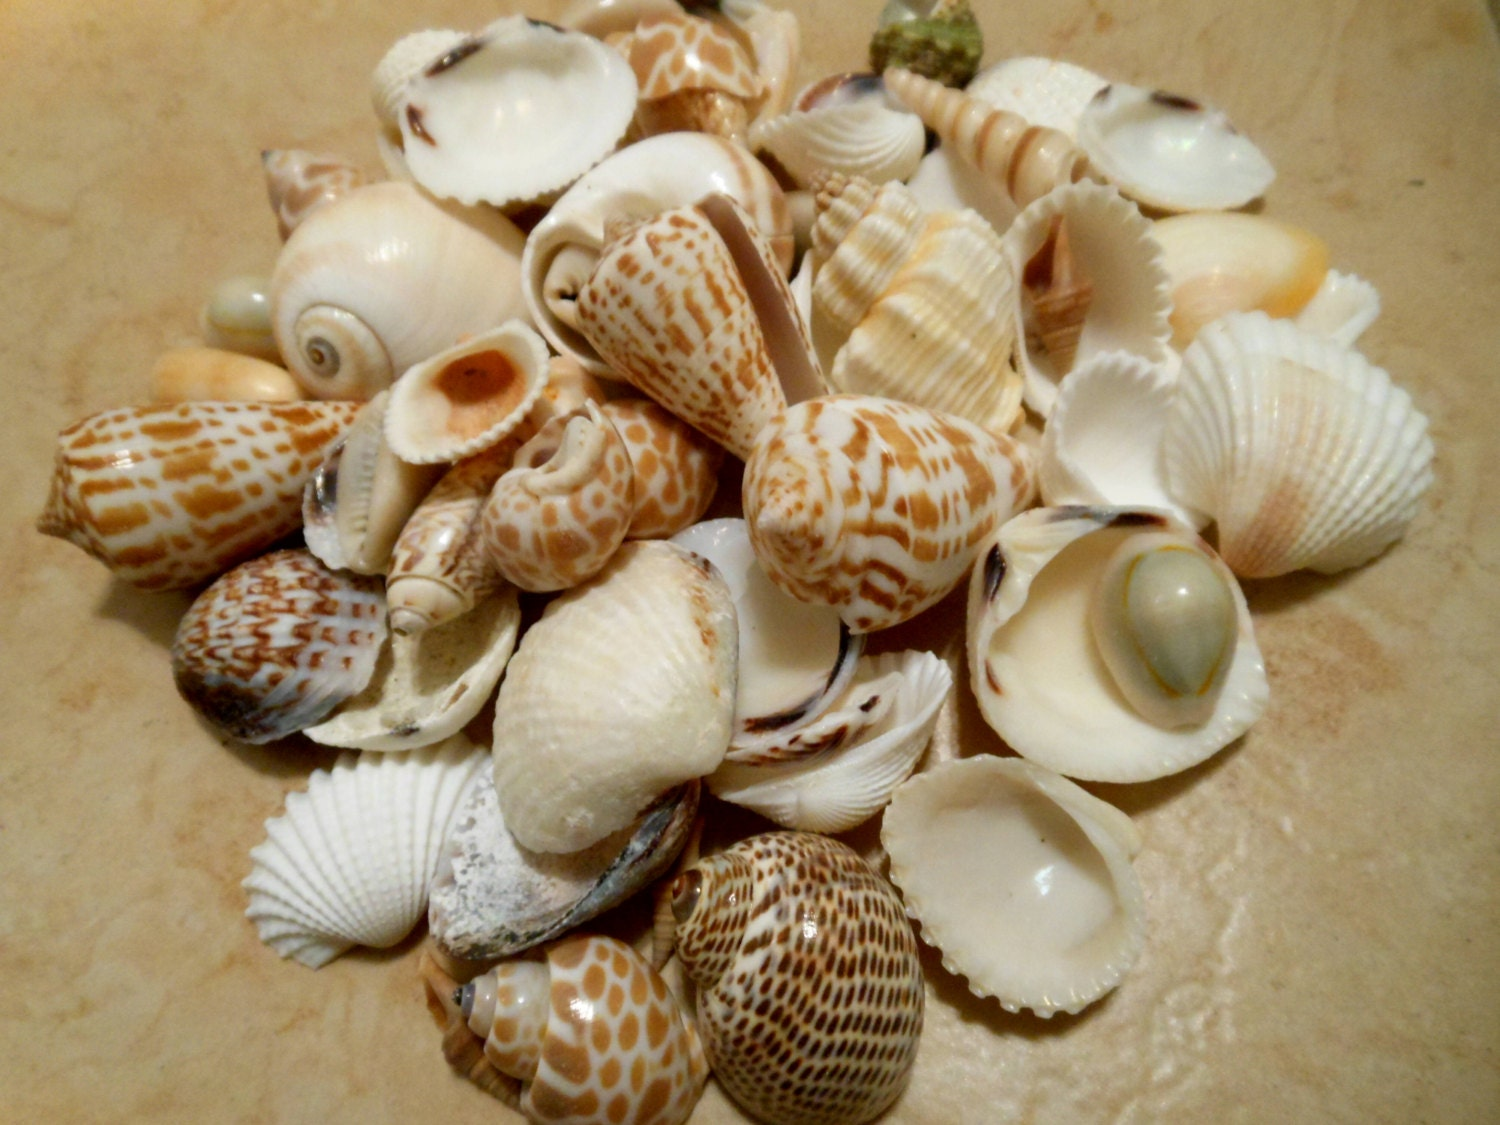 Seashells Indian Ocean Beach Mix Assorted Seashells Seashell